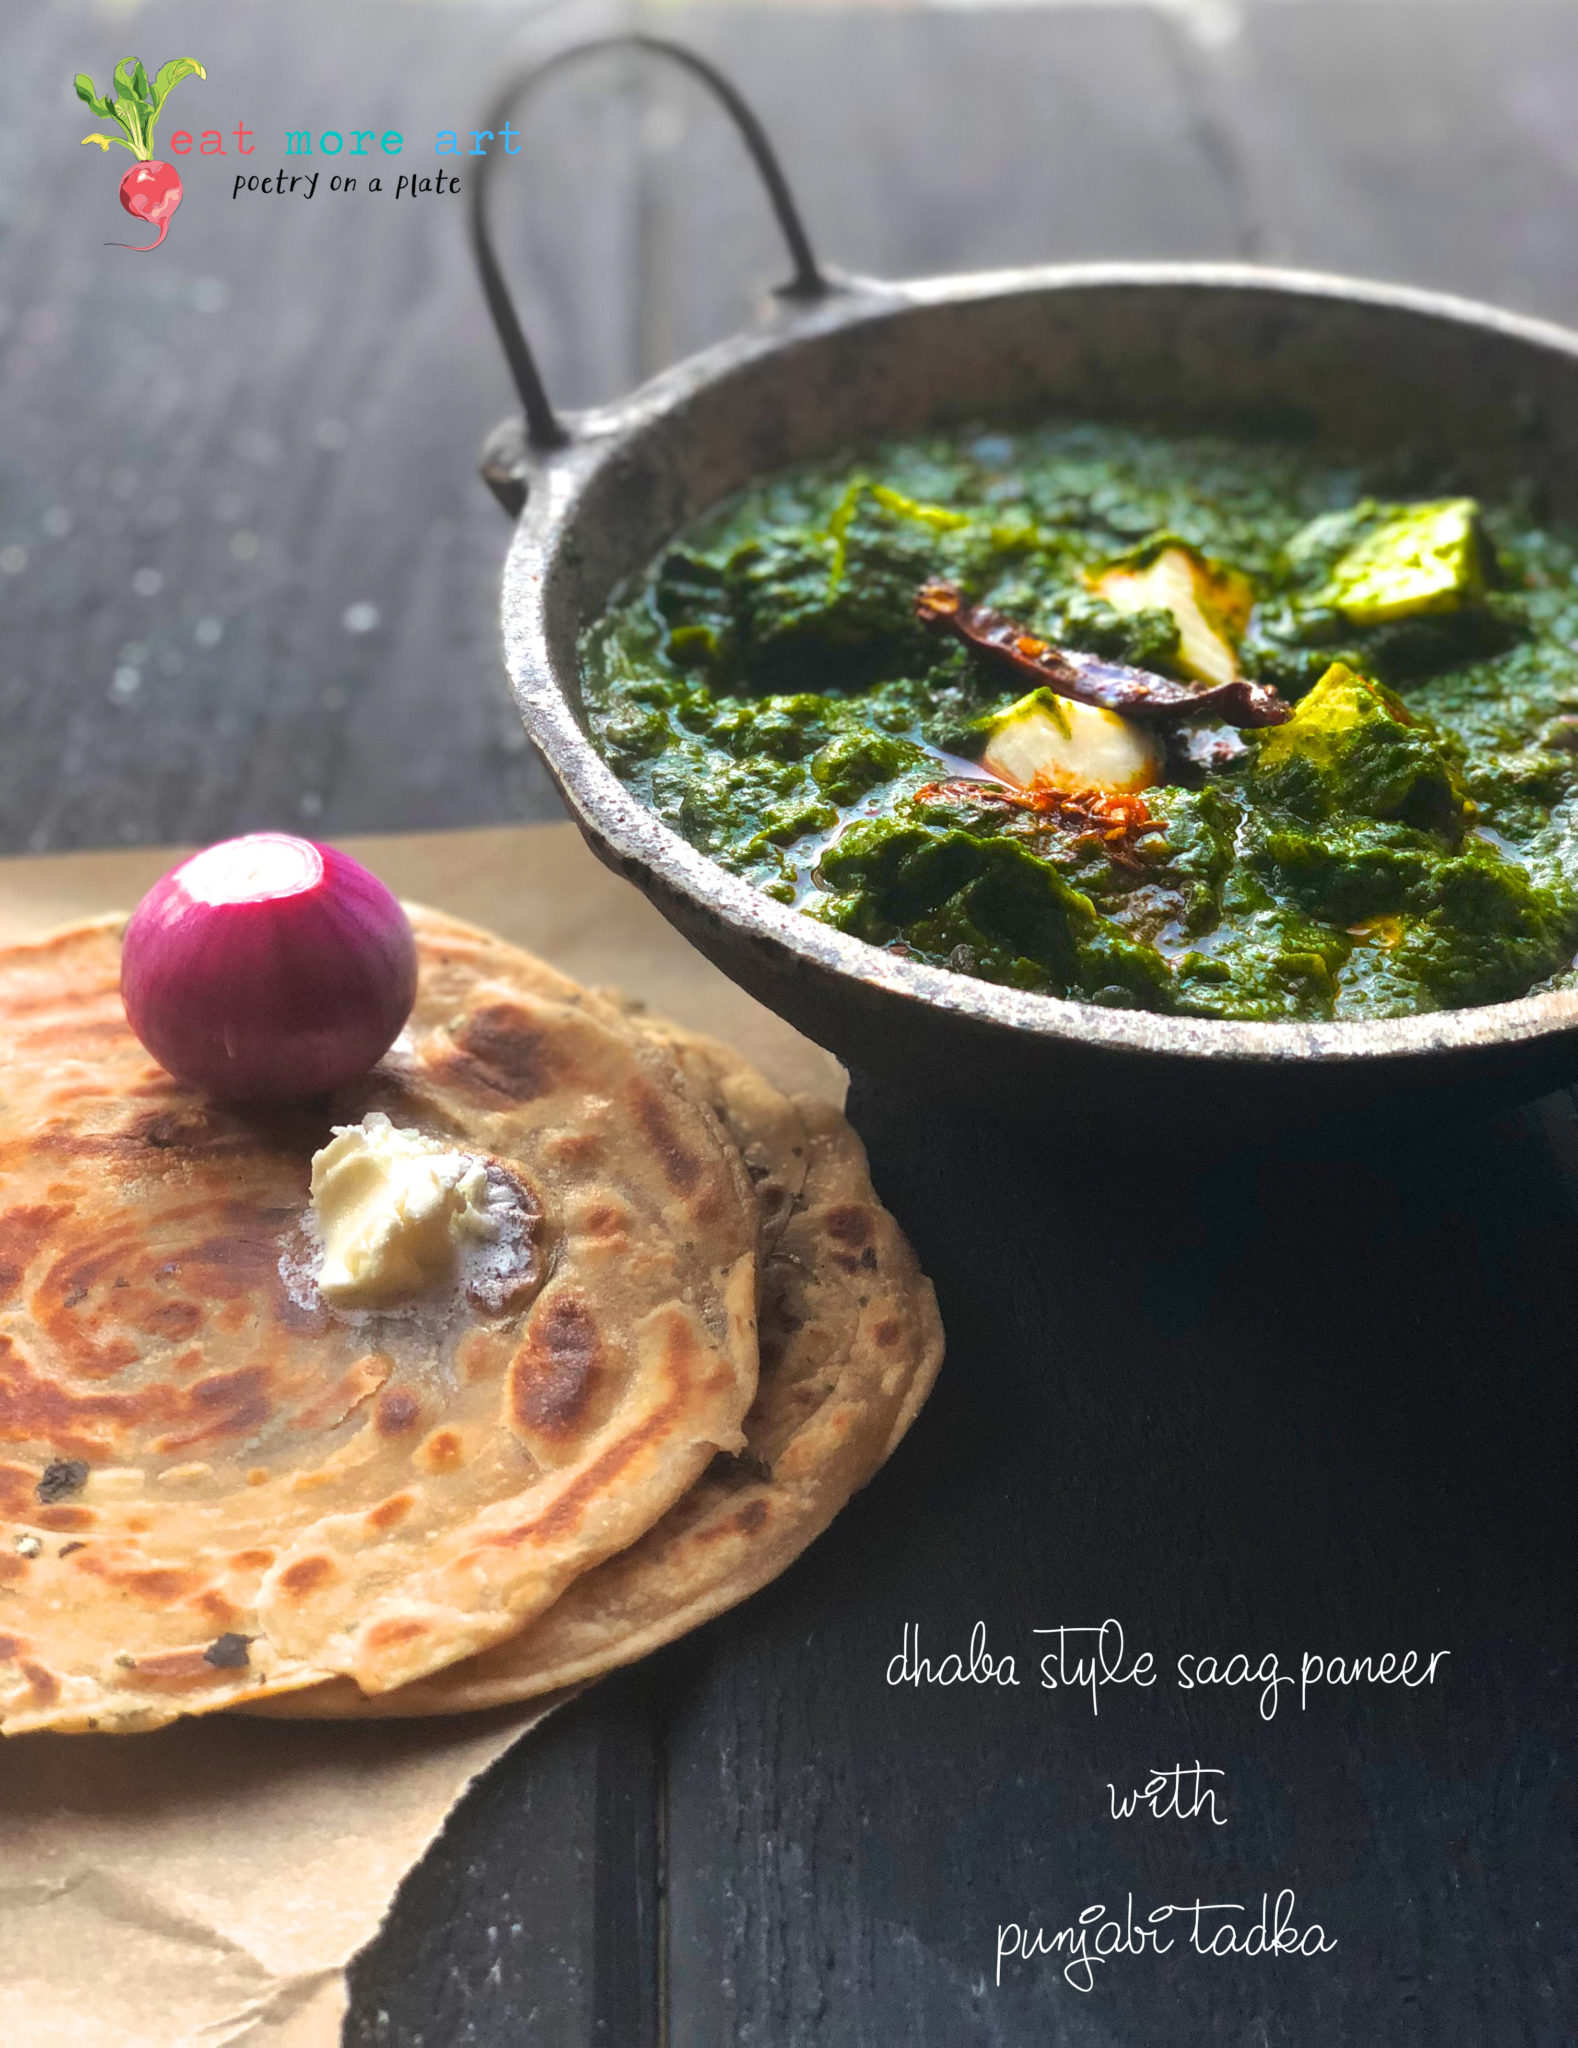 Dhaba Style Saag Paneer with Punjabi Tadka | Eat More Art